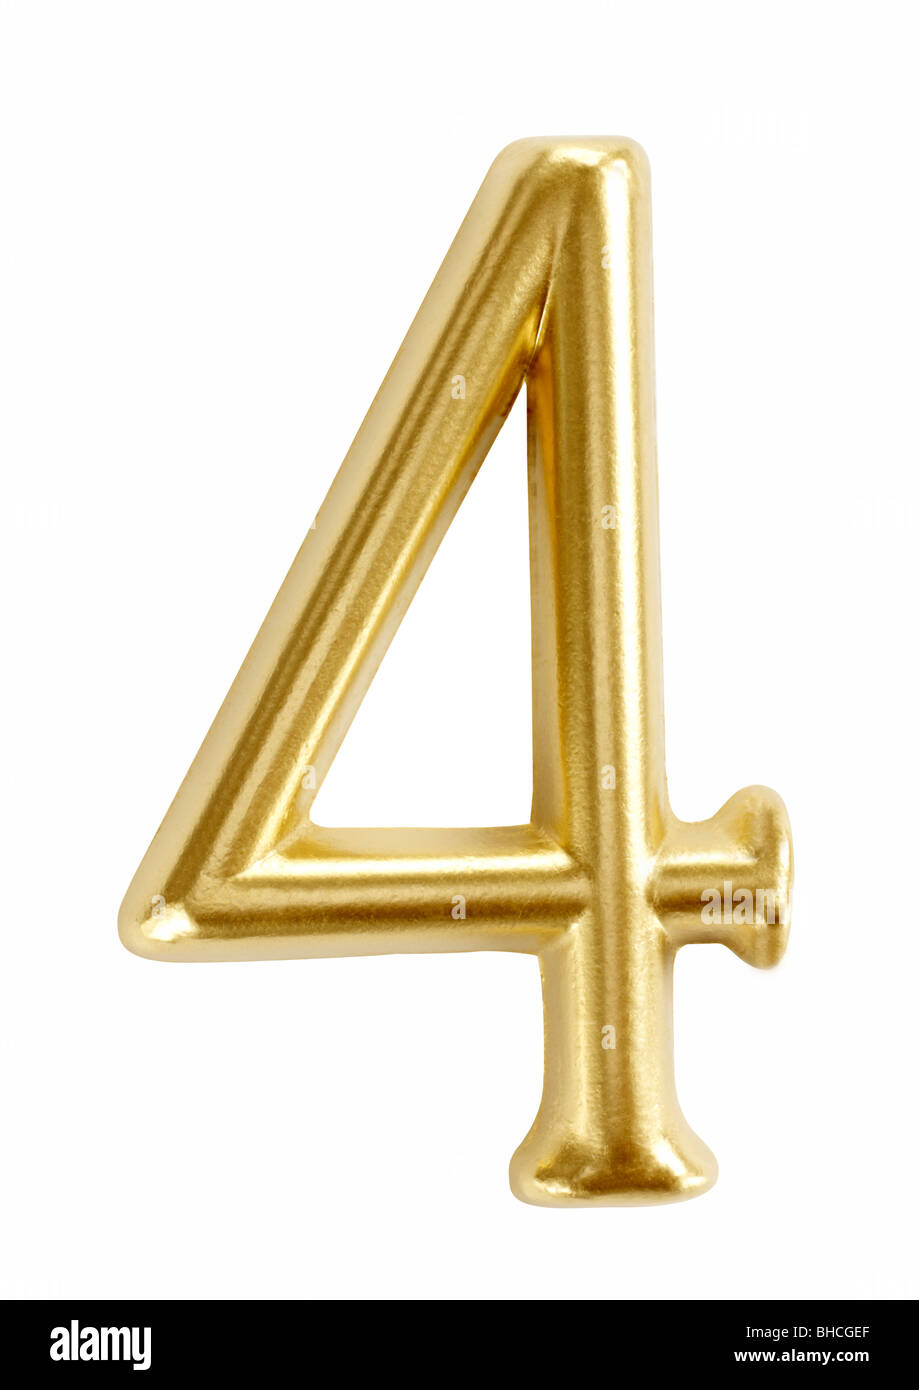 number numbers four 4 symbol figure digit - Stock Image